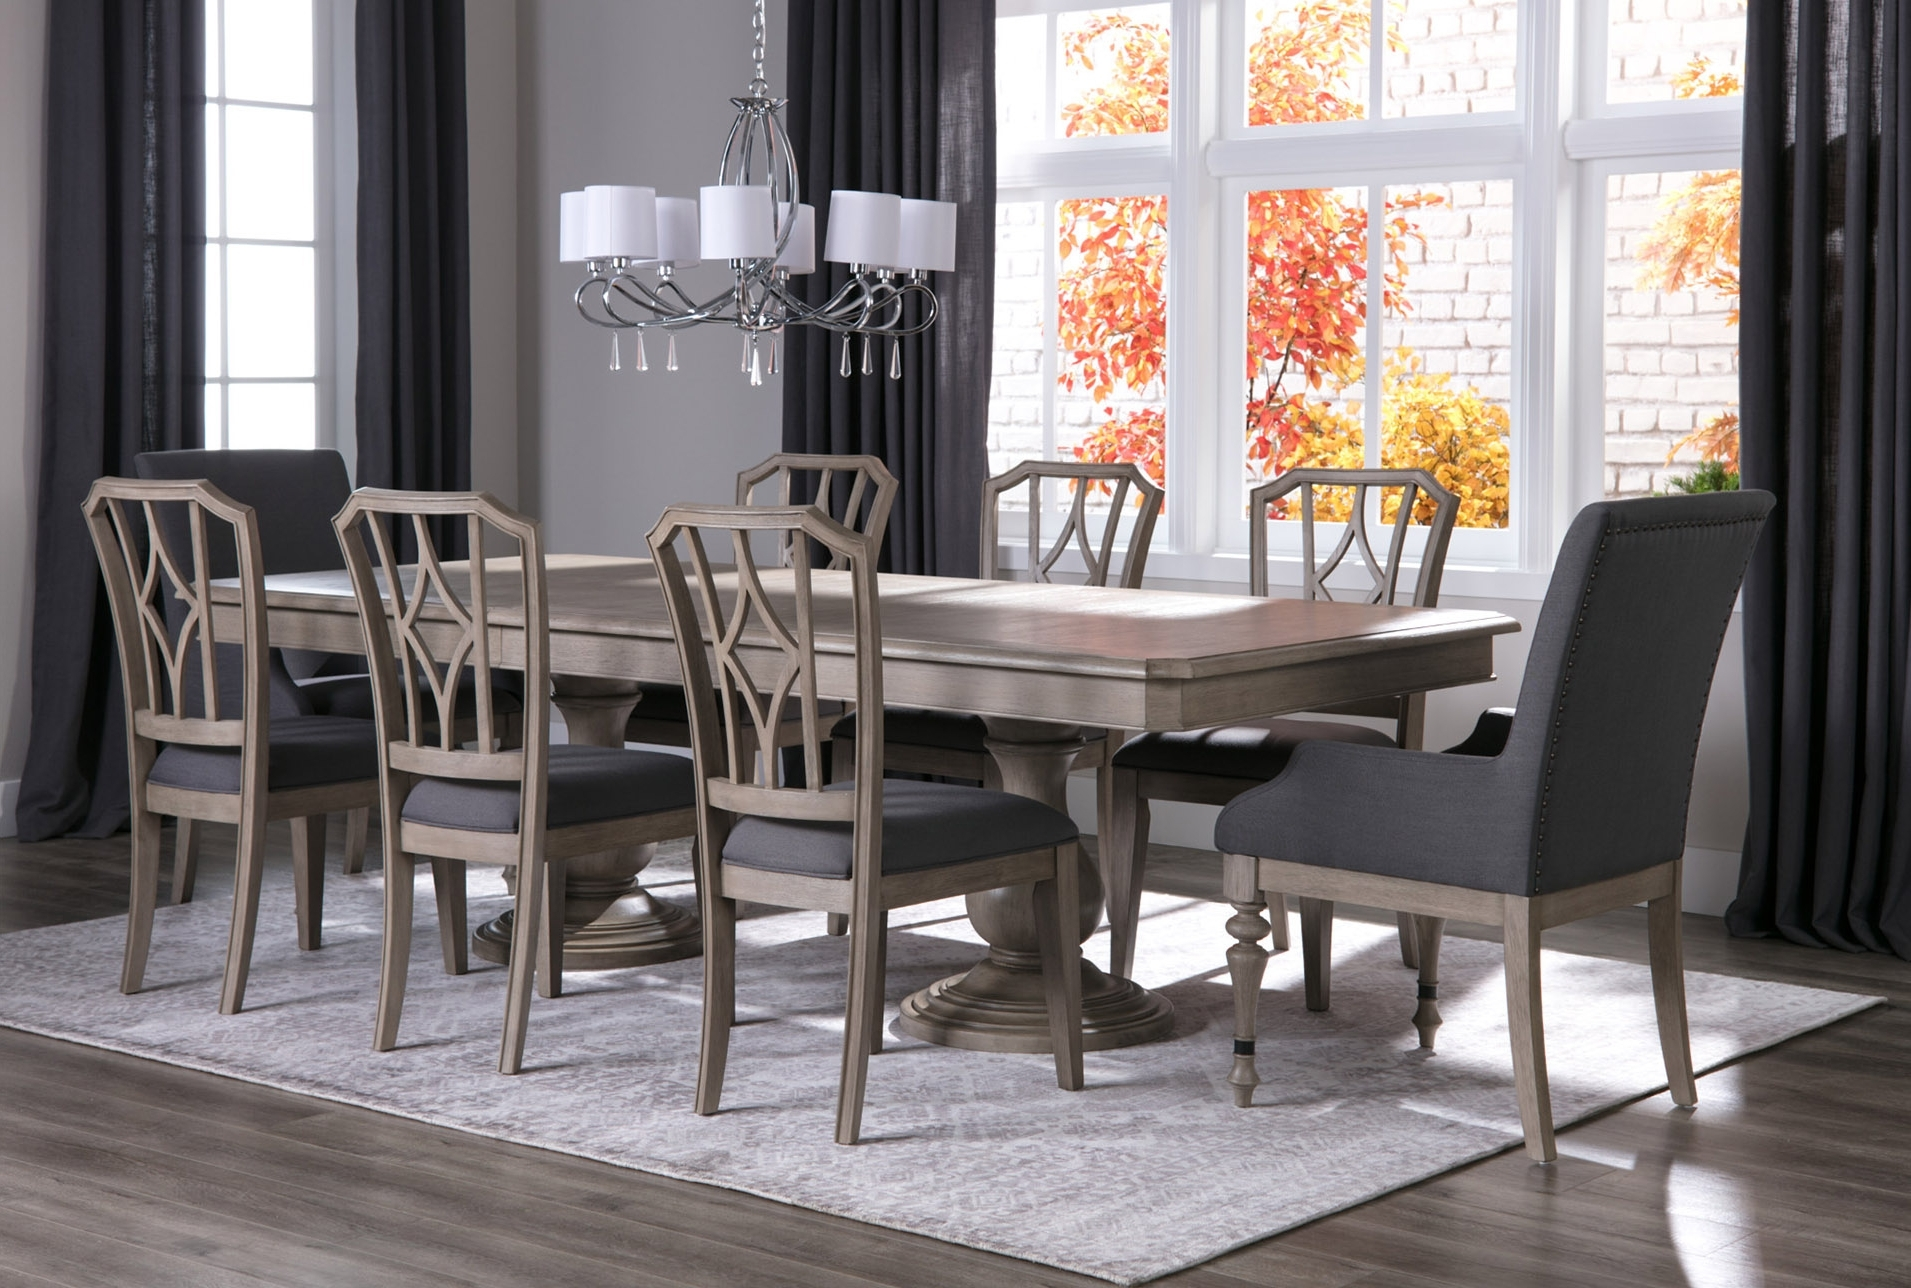 Lätt Bockbord Att Bygga, Rundstav Som Fixerar Planken, Lät With Well Known Caira 7 Piece Rectangular Dining Sets With Diamond Back Side Chairs (View 14 of 25)